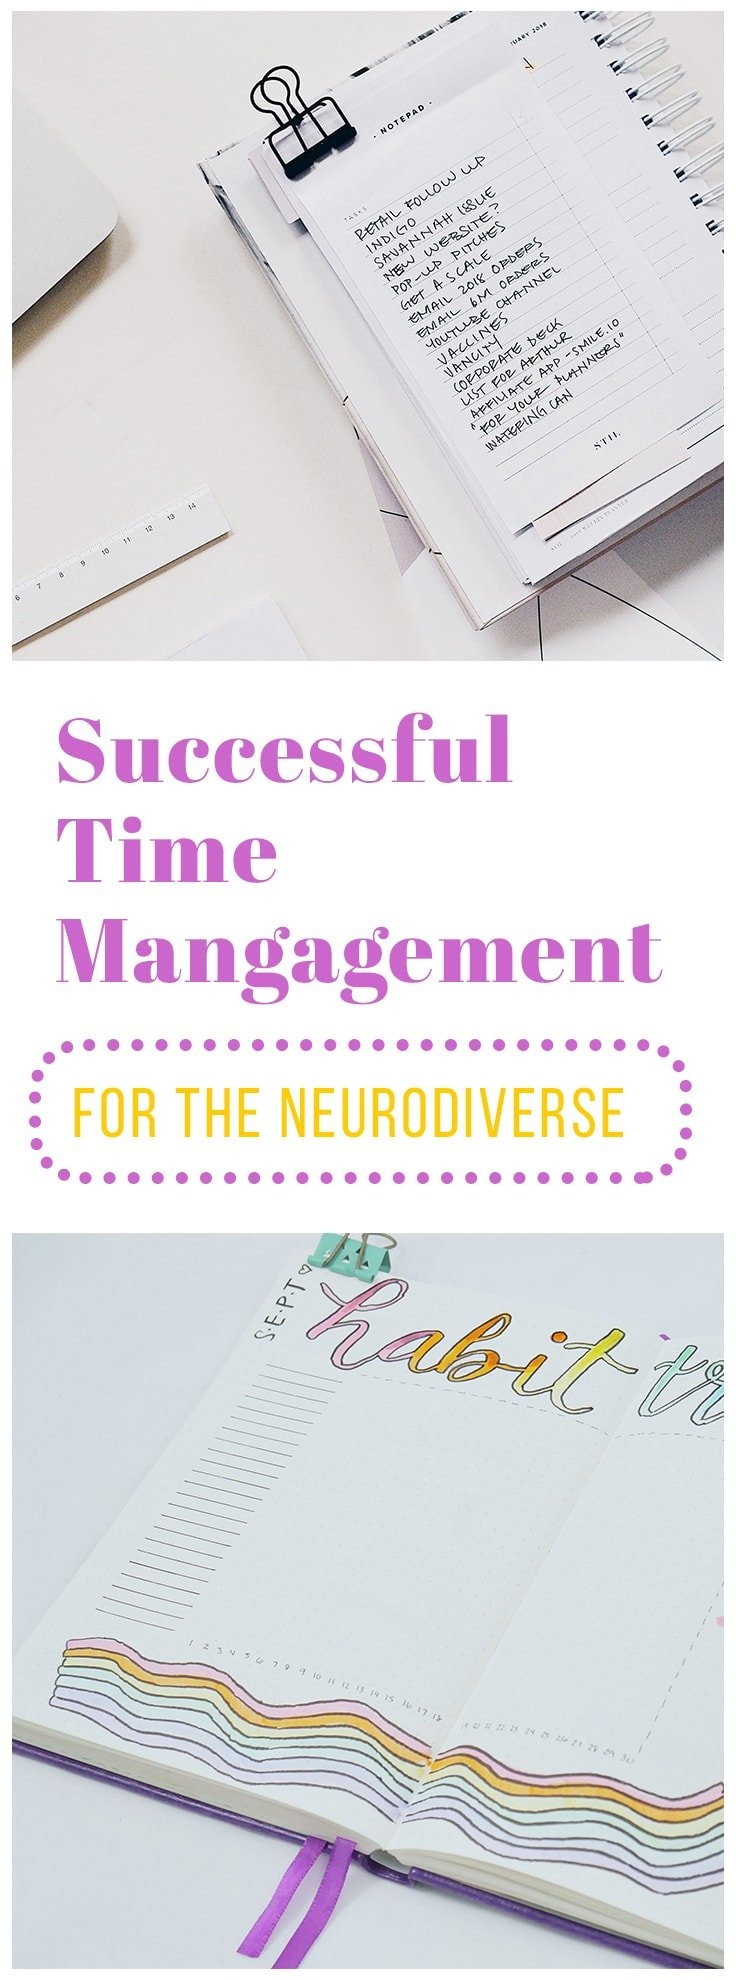 Time management hasn't been an easy journey personally. I'm at a point now where I'm regarded as having a good understanding of the topic, but it doesn't feel like long ago that I stuck out from my colleagues and classmates. People who are neurodiverse often struggle with completing tasks normally, so try one of these creative time management tools to help be more successful!  #neurodiverse #timemangement #productivity